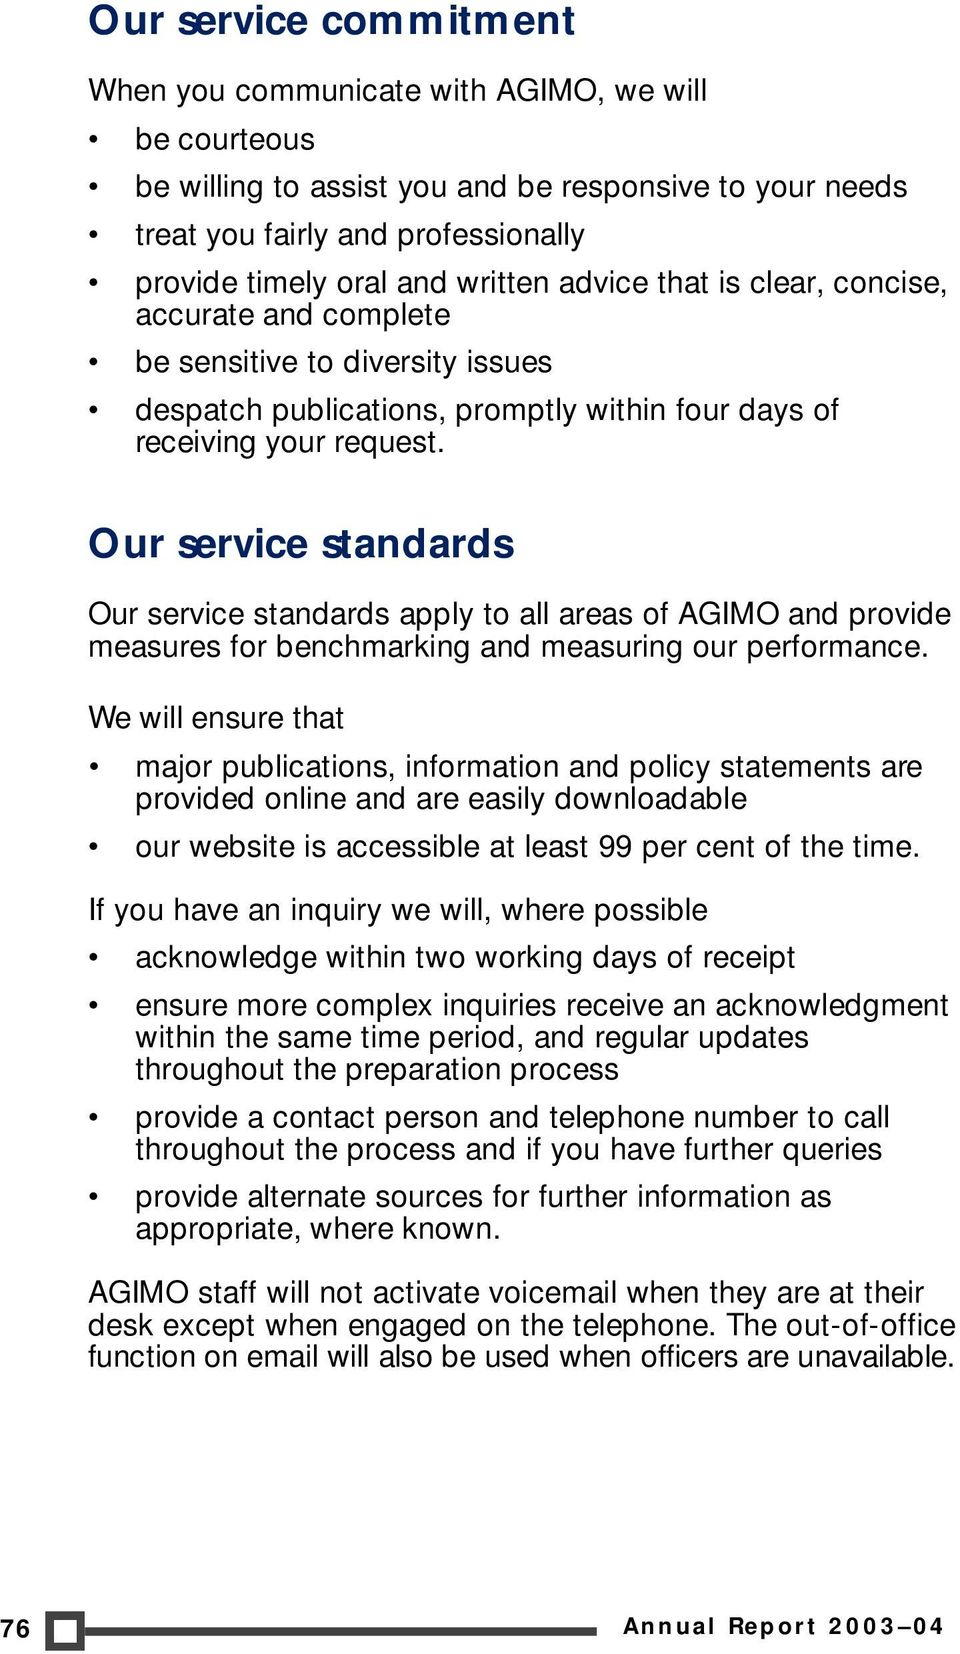 Our service standards Our service standards apply to all areas of AGIMO and provide measures for benchmarking and measuring our performance.